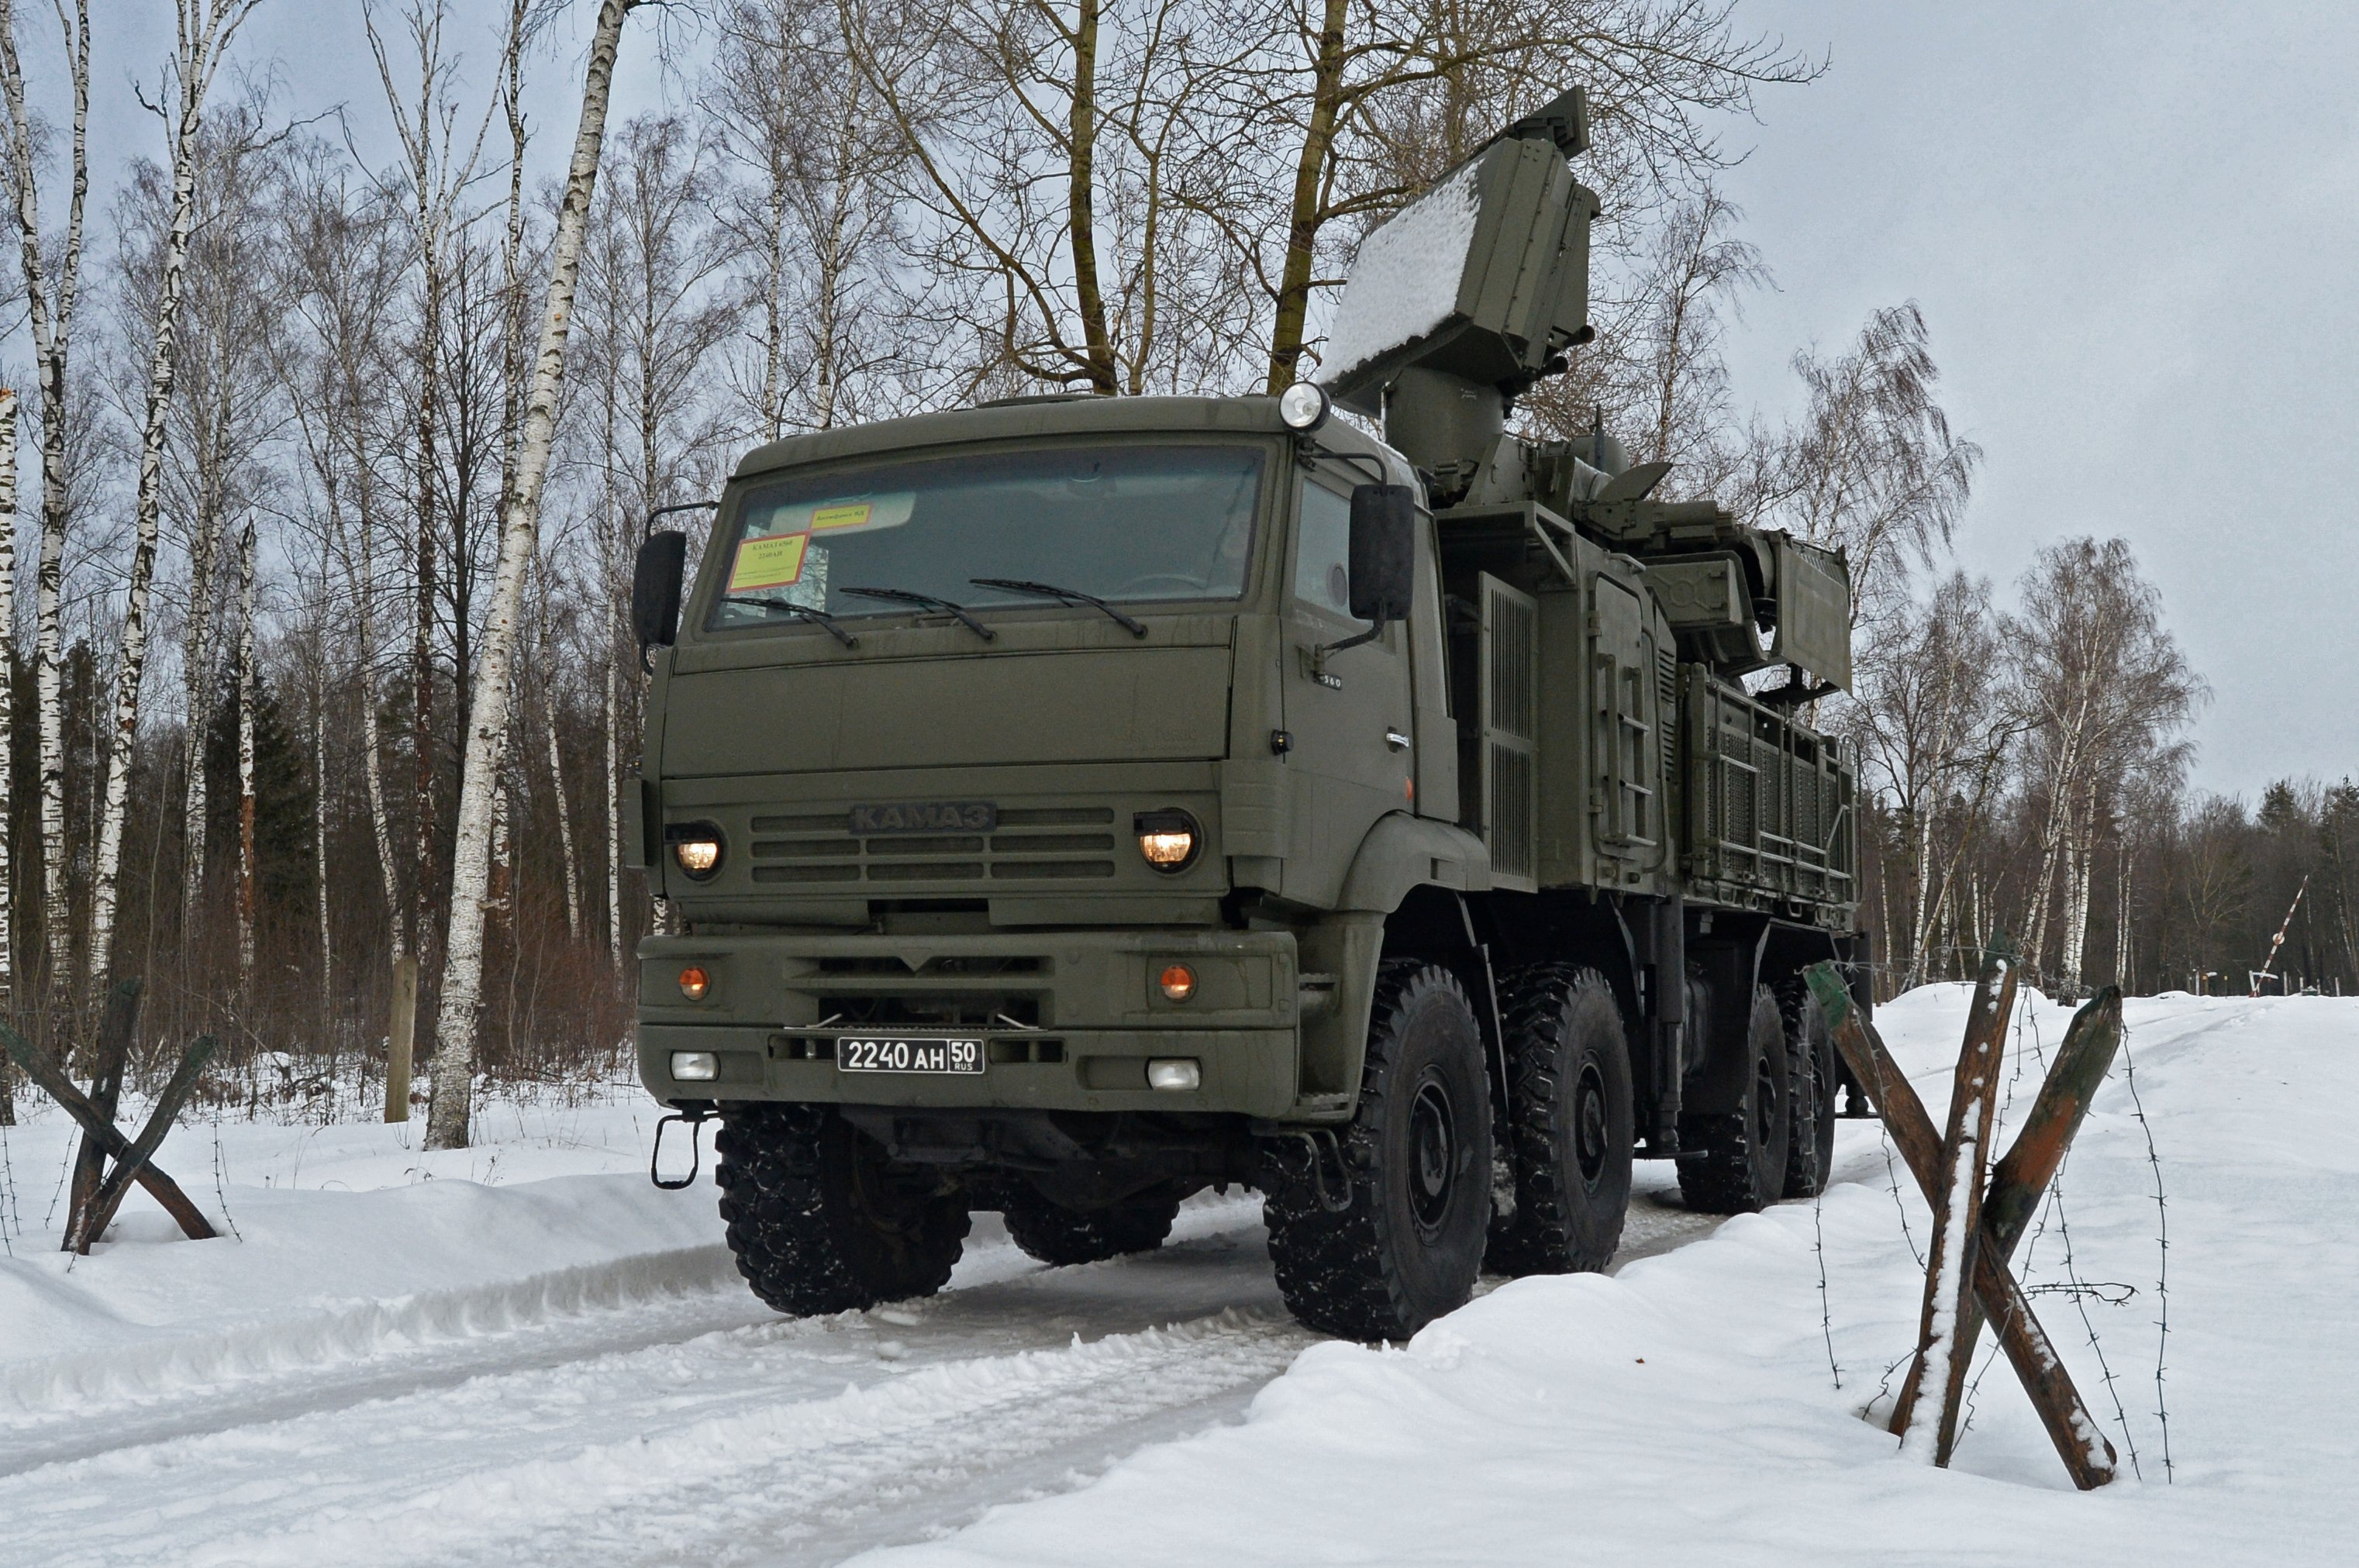 The Pantsir-S1 short-to-medium range gun-missile system on the march